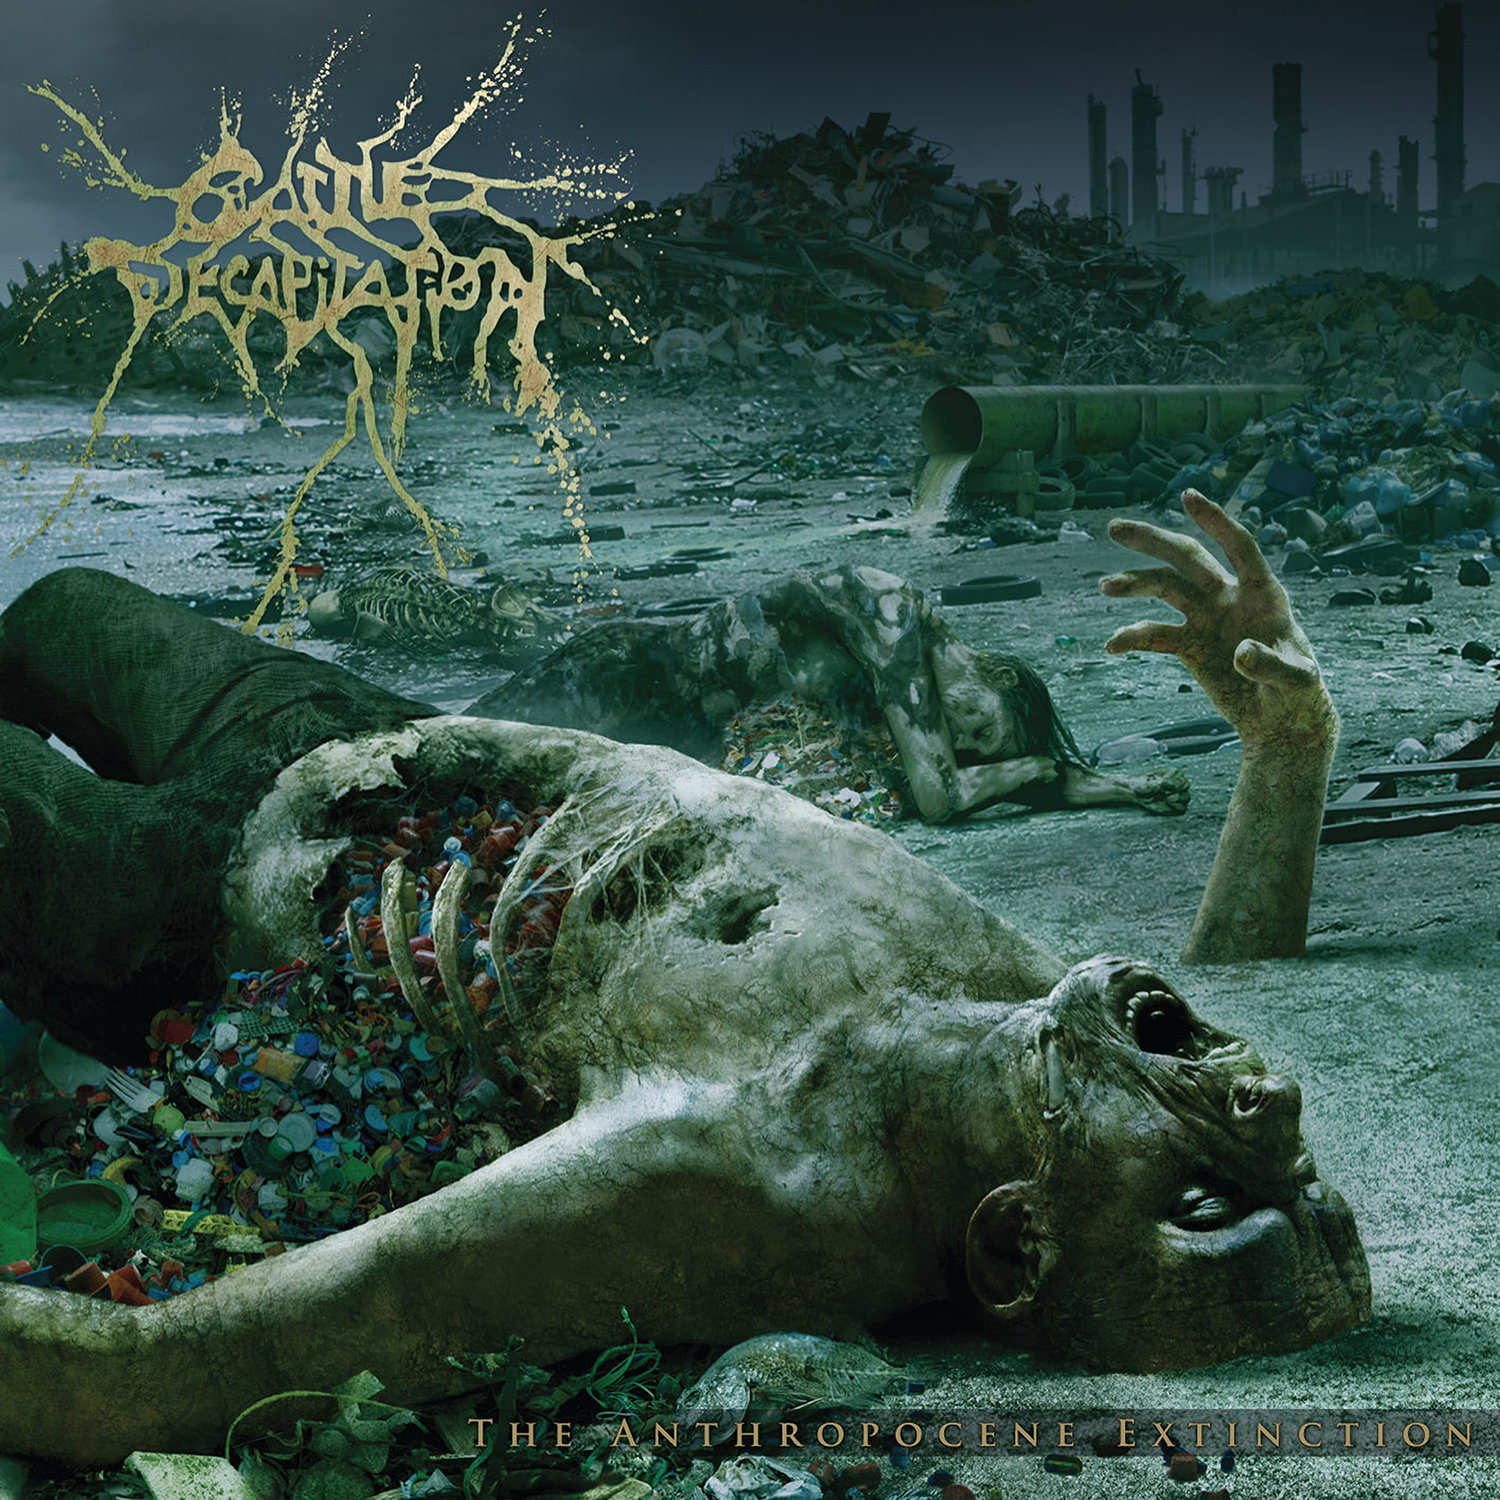 Cattle Decapitation – The Anthropocene Extinction Review